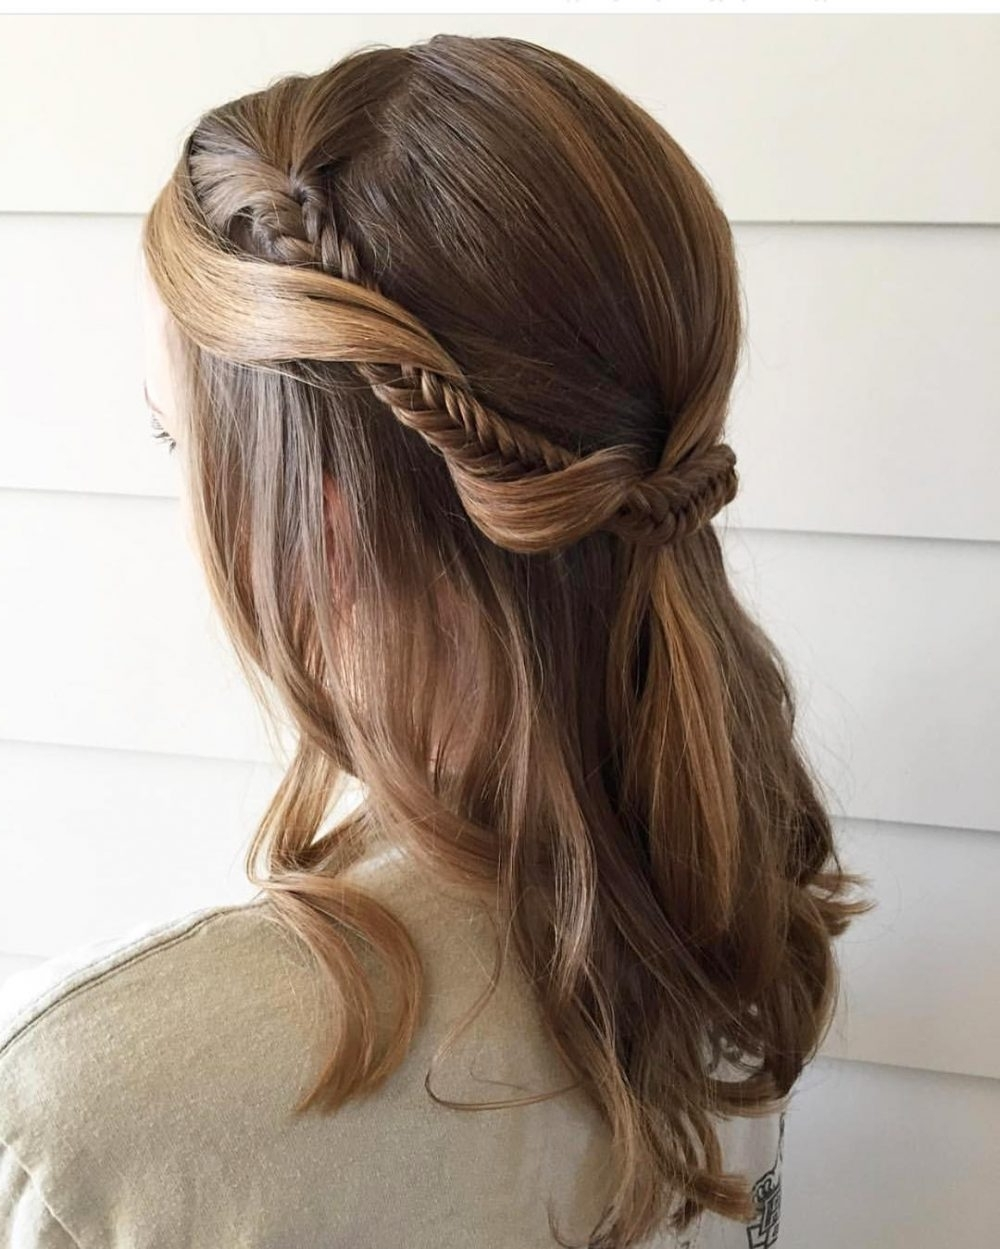 33 Ridiculously Easy Diy Chic Updos For Easy Long Updo Hairstyles (View 3 of 15)